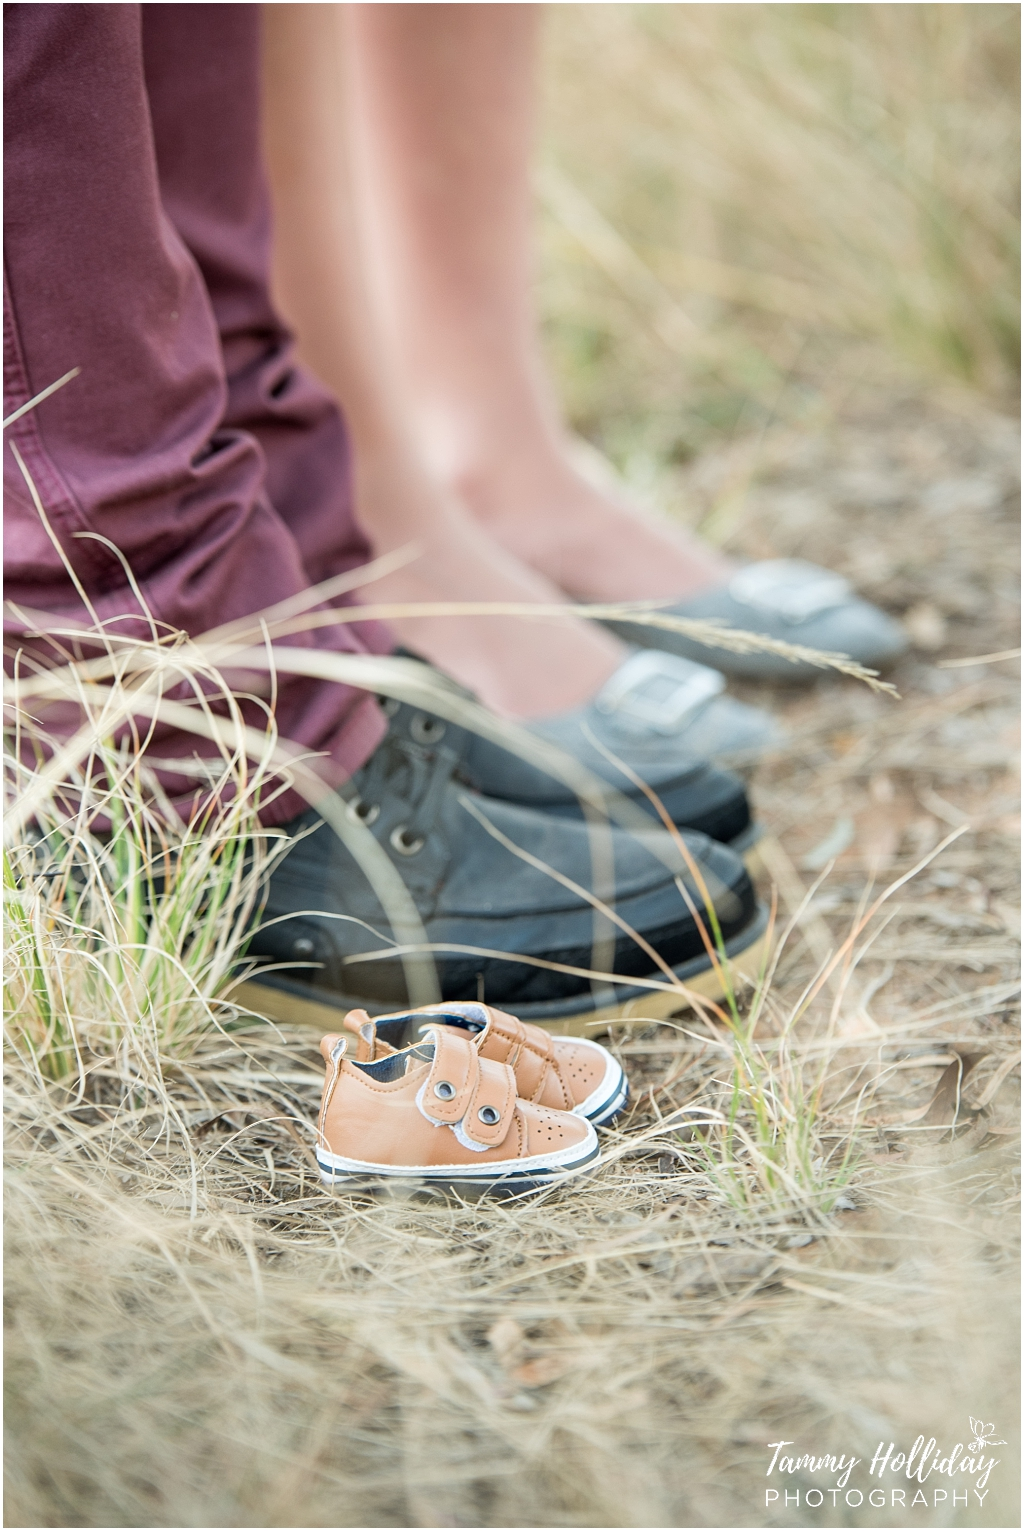 maternity shoot of baby shoes with parents shoes